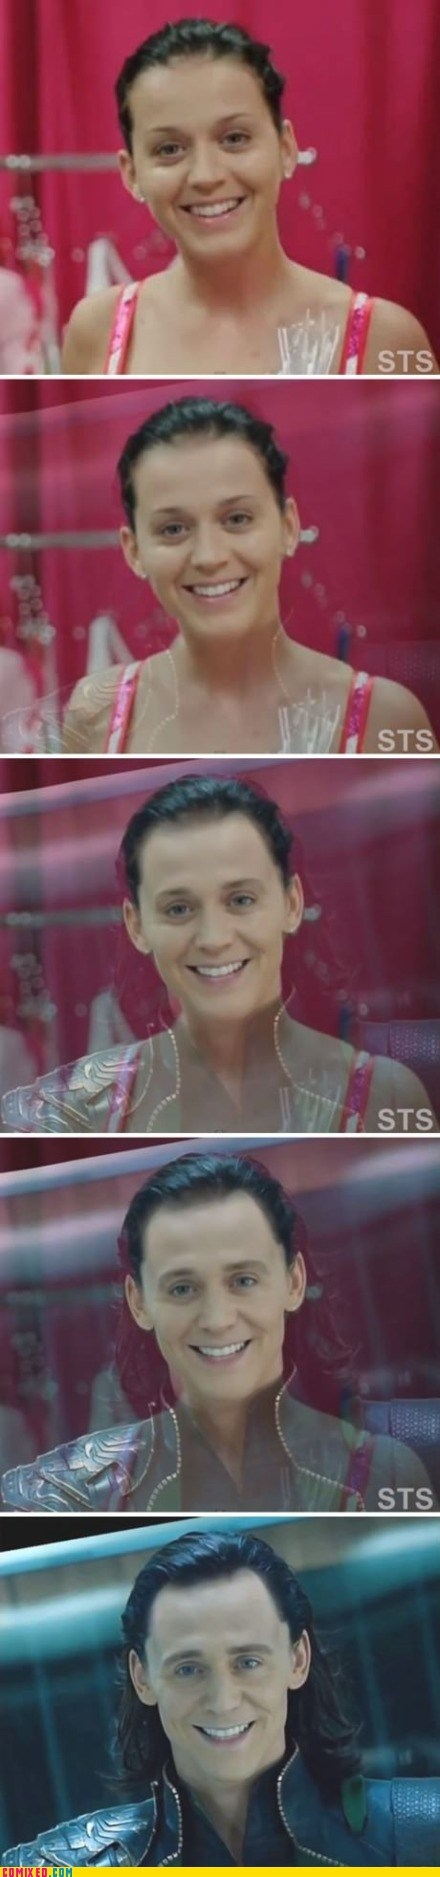 best of week From the Movies katy perry loki Memes photoshop The Avengers - 6299909376